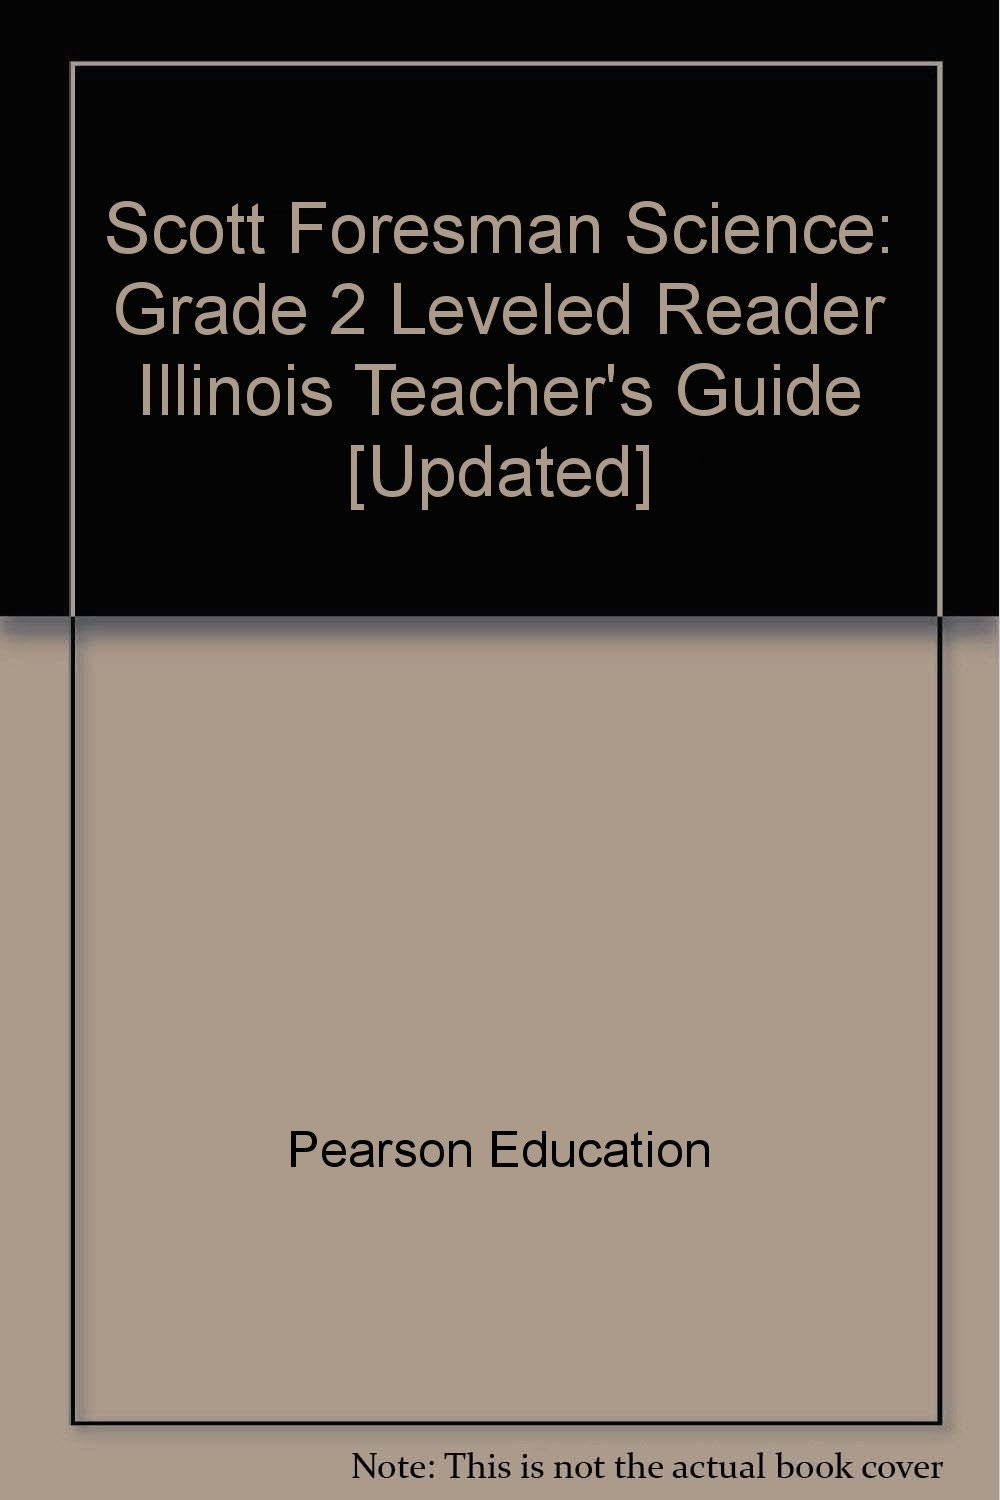 Scott Foresman Science: Grade 2 Leveled Reader Illinois Teacher's Guide  [Updated]: Pearson Education: 9780328346035: Amazon.com: Books